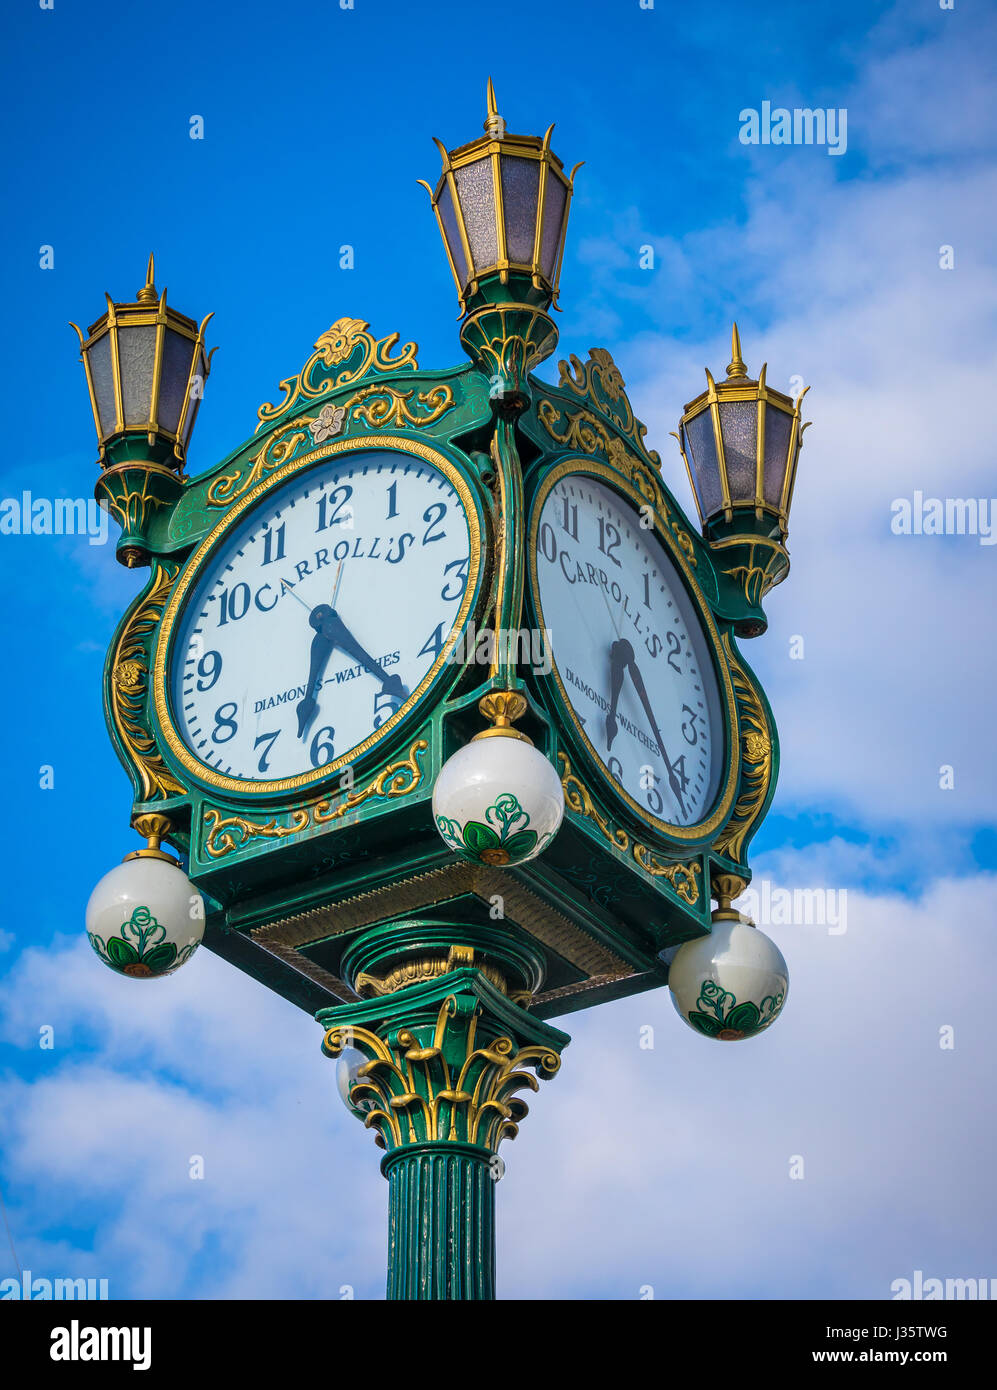 This magnificent clock used to be located downtown at Carroll's Fine Jewelers at 4th Avenue and Pike Street. - Stock Image